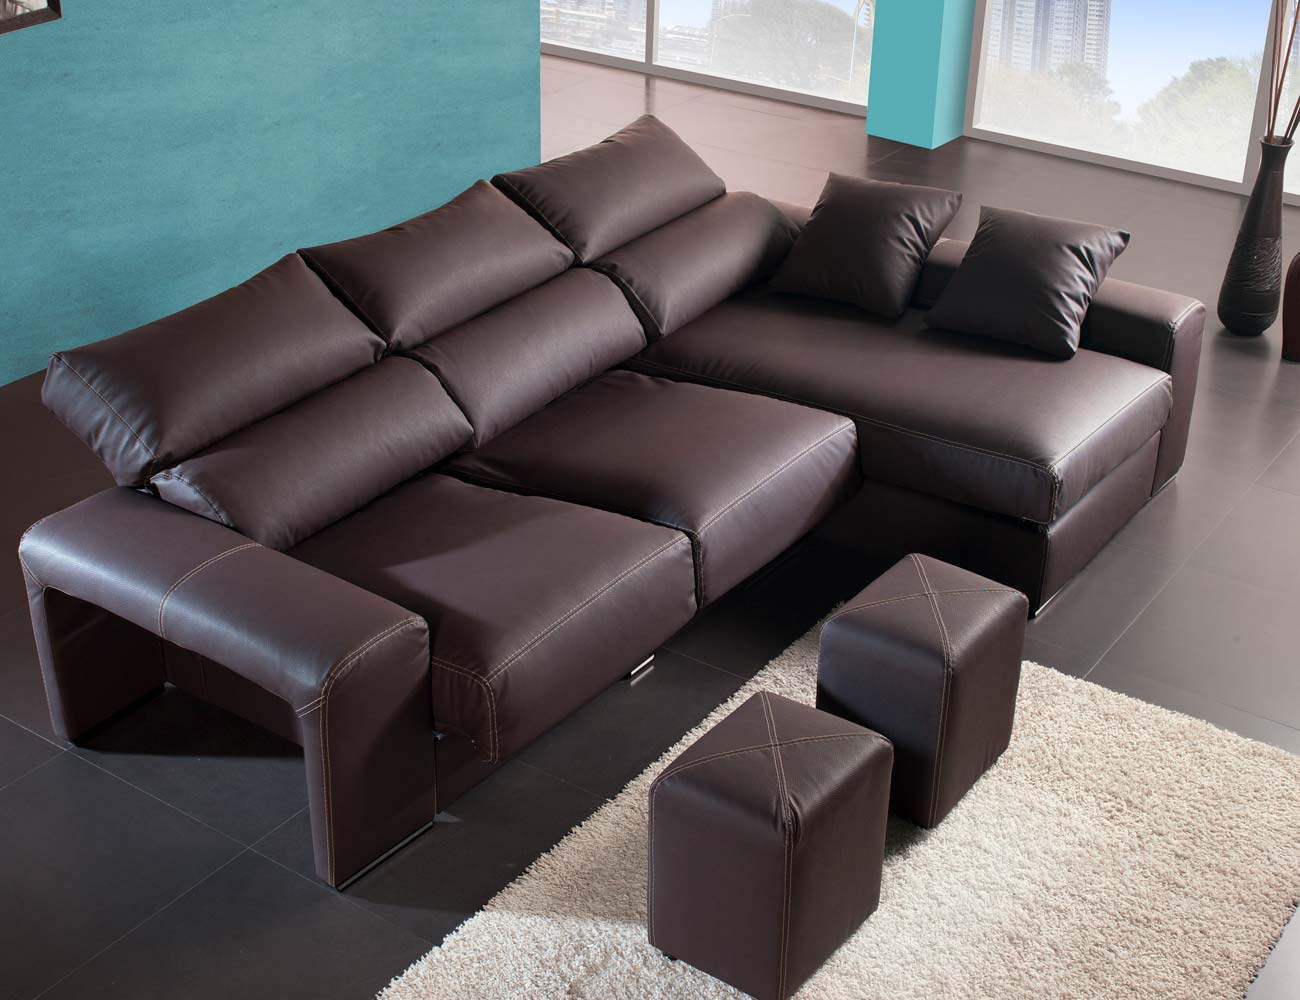 Sofa chaiselongue moderno polipiel chocolate poufs taburetes33